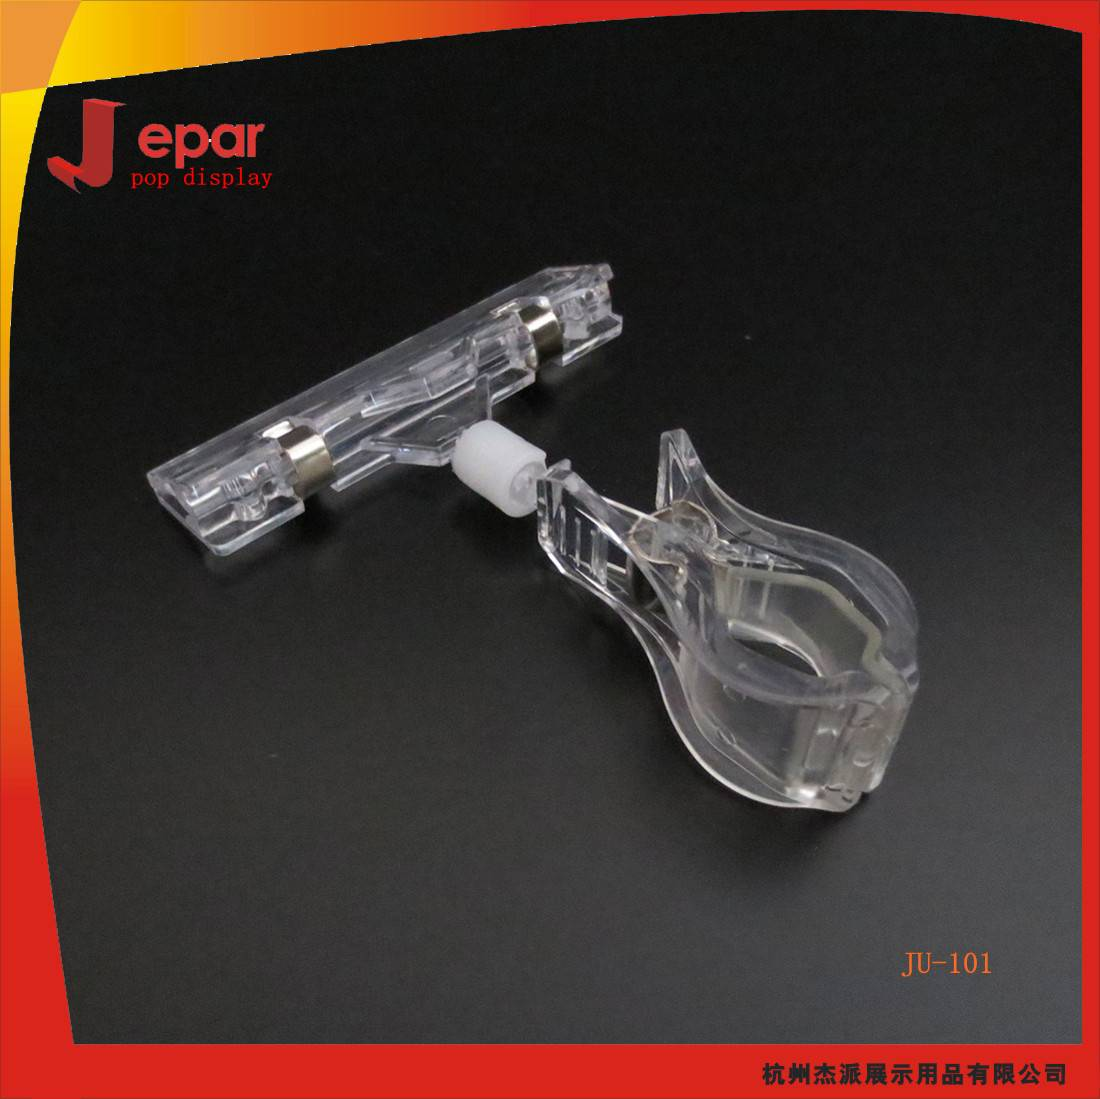 Supermarket plastic pop clip for price tag display